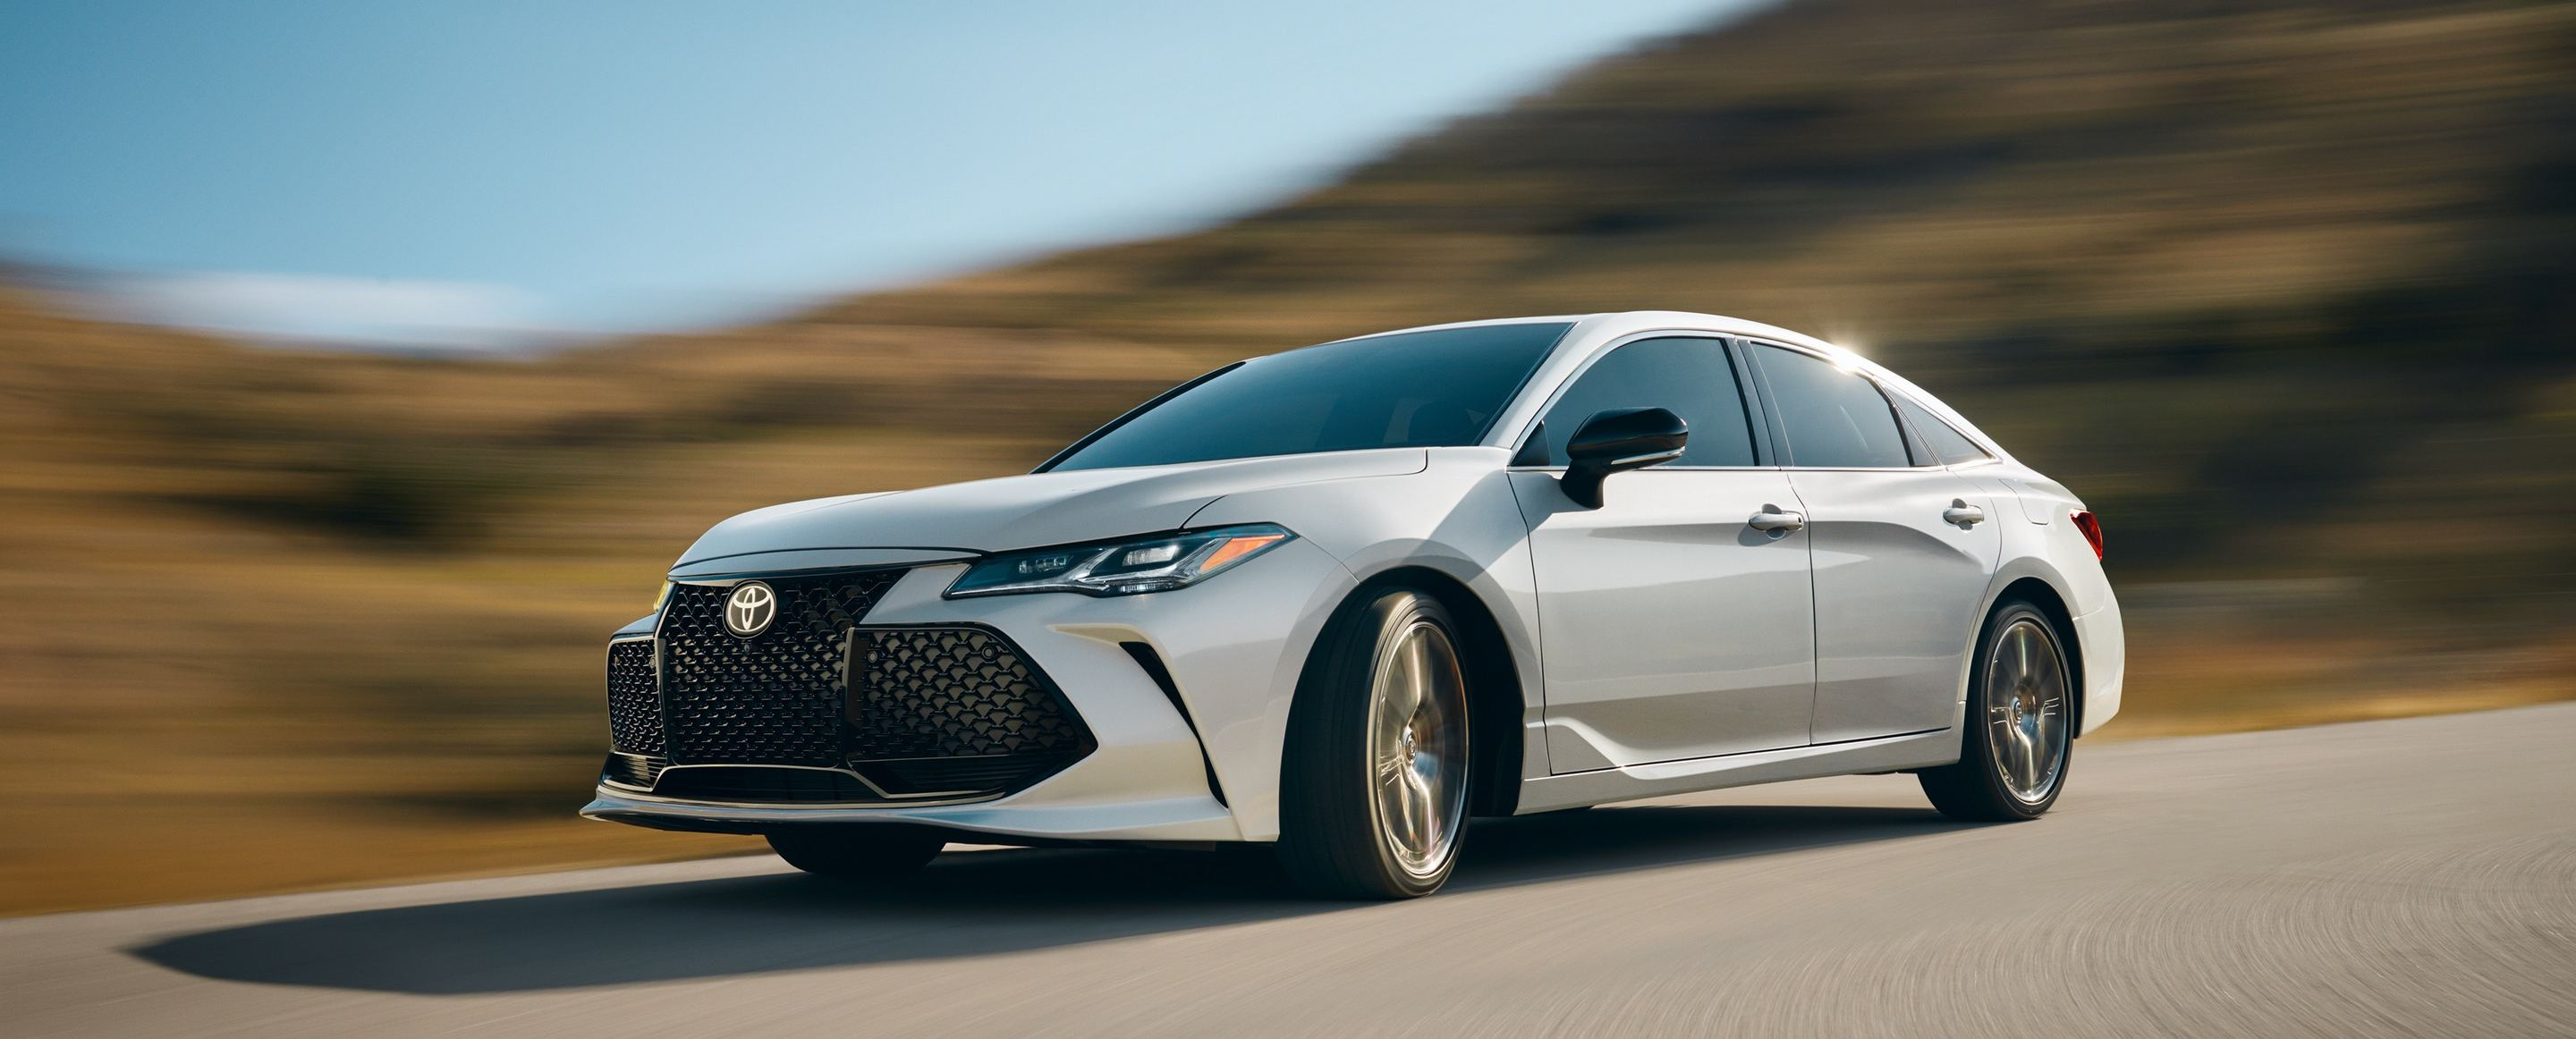 2020 Toyota Avalon Leasing near Loves Park, IL